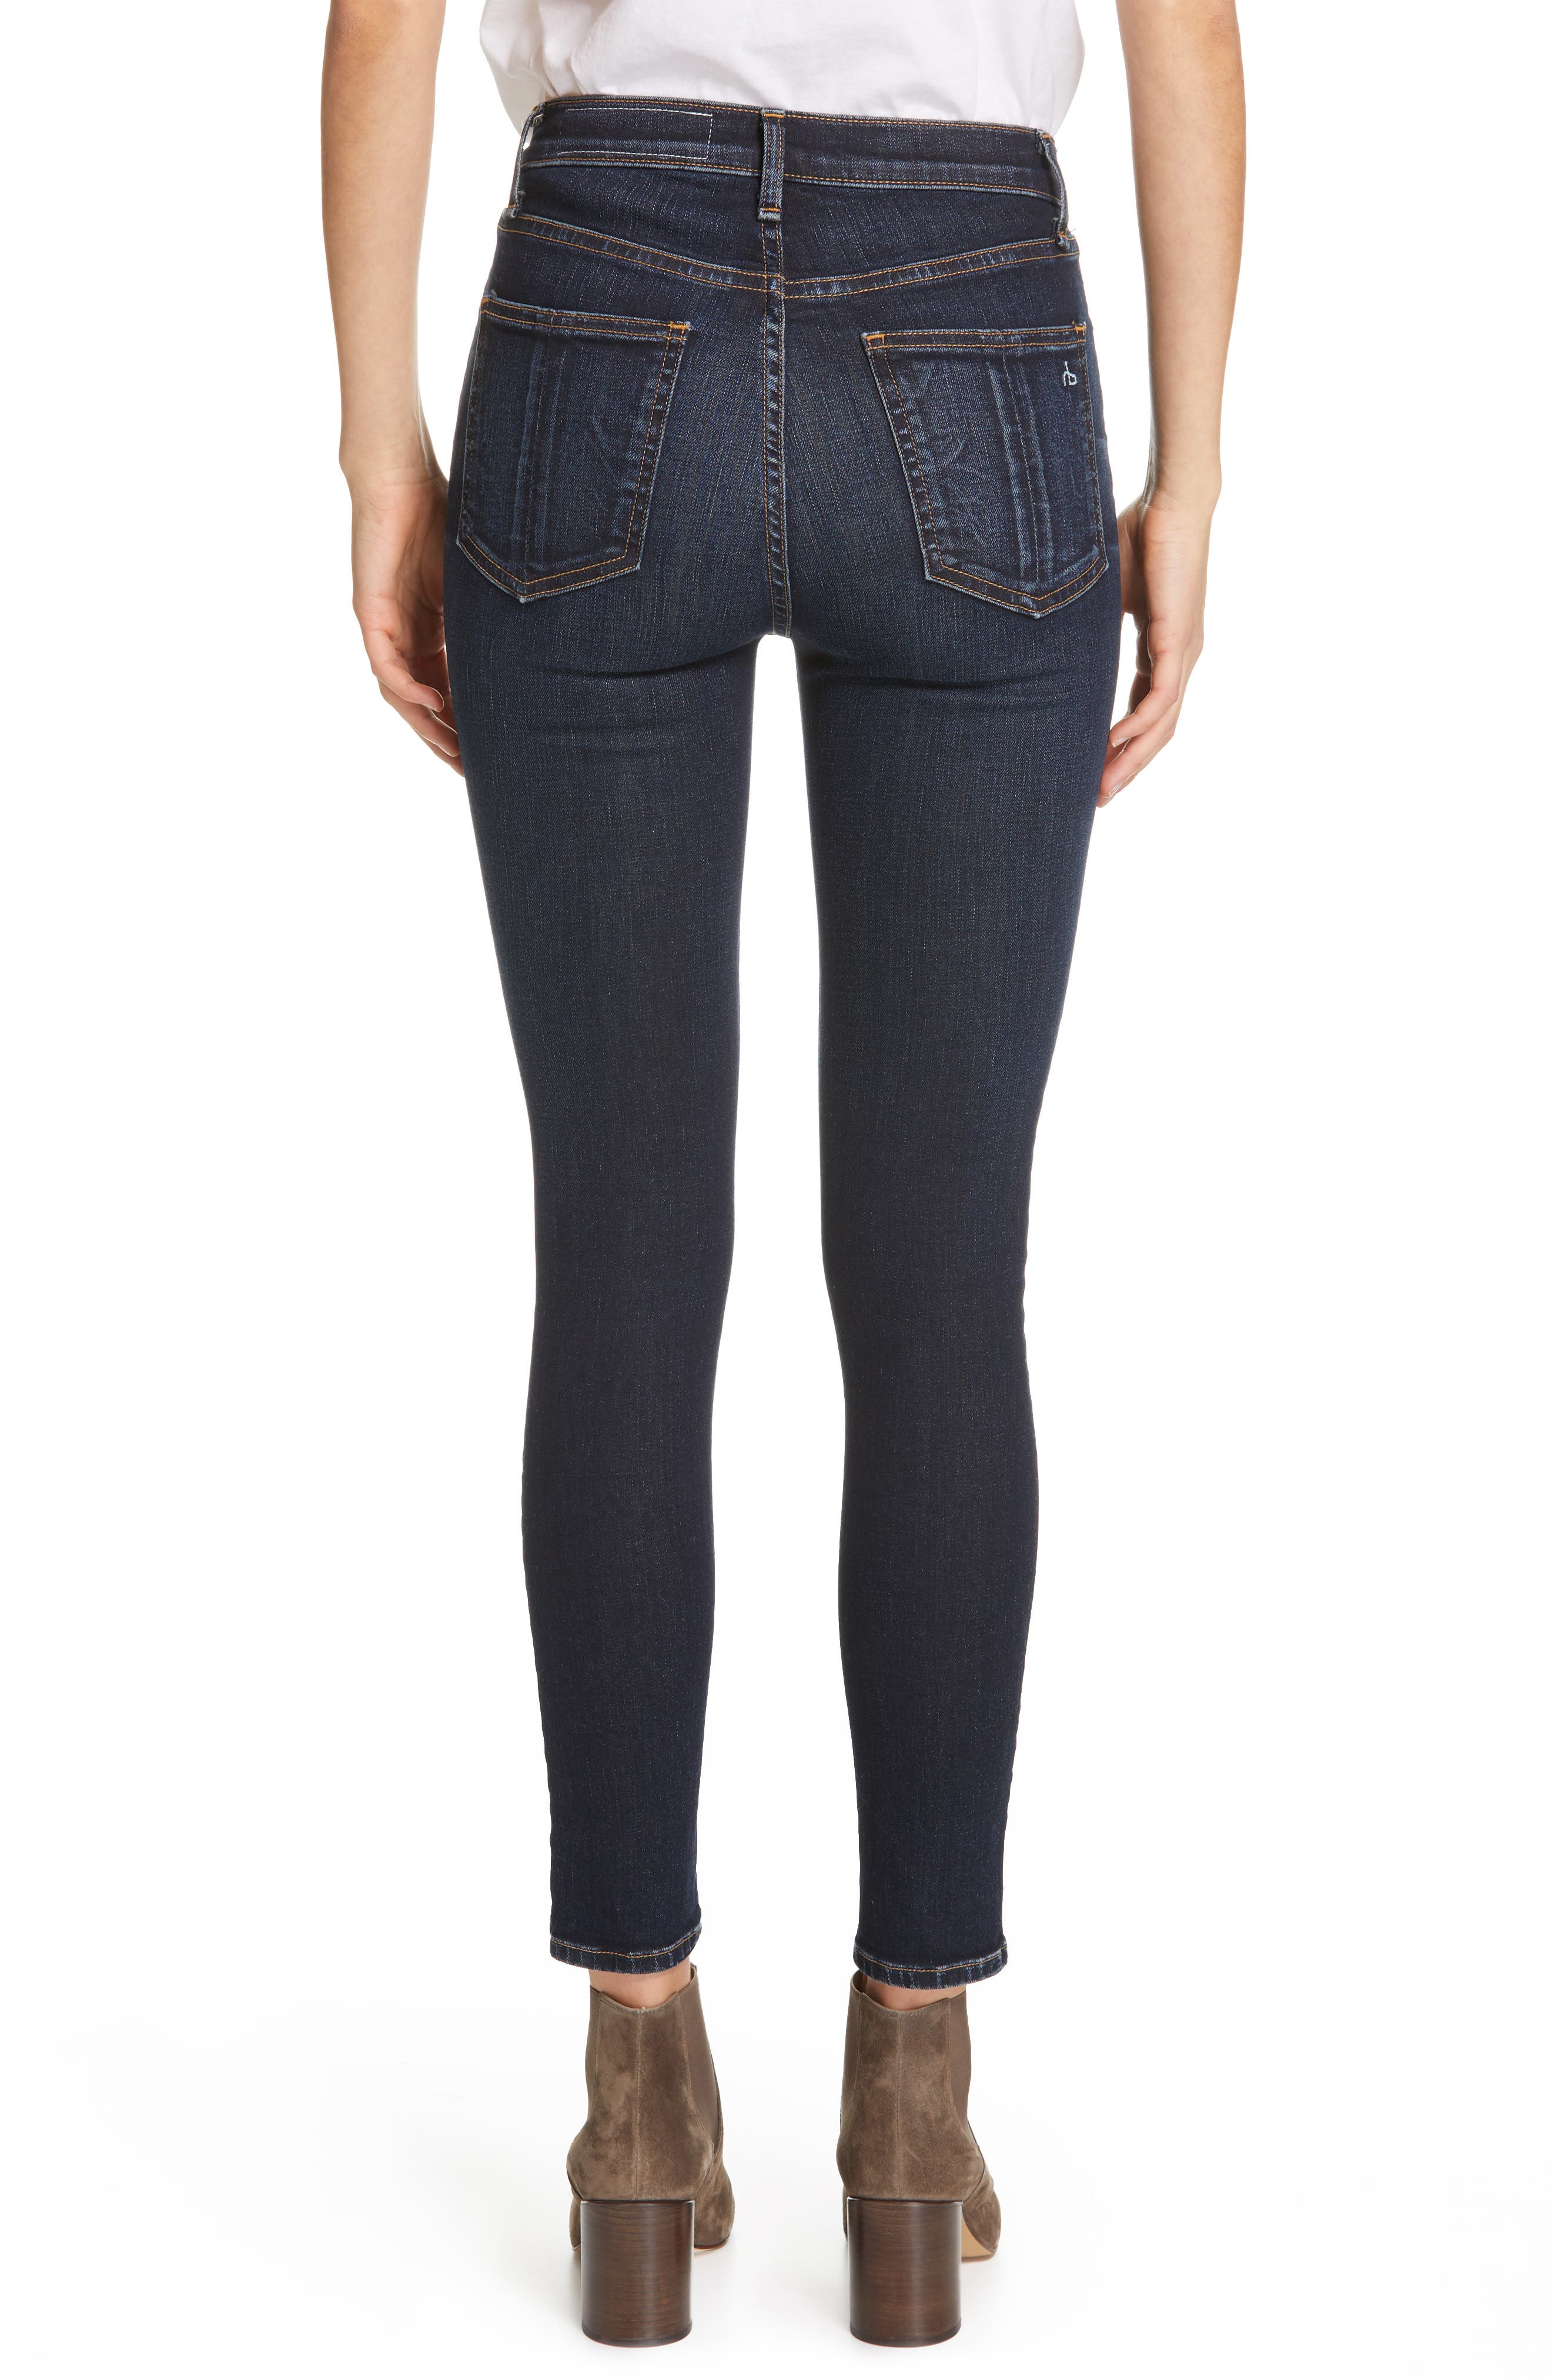 JEAN High Waist Ankle Skinny Jeans,                             Alternate thumbnail 2, color,                             RIVERDALE